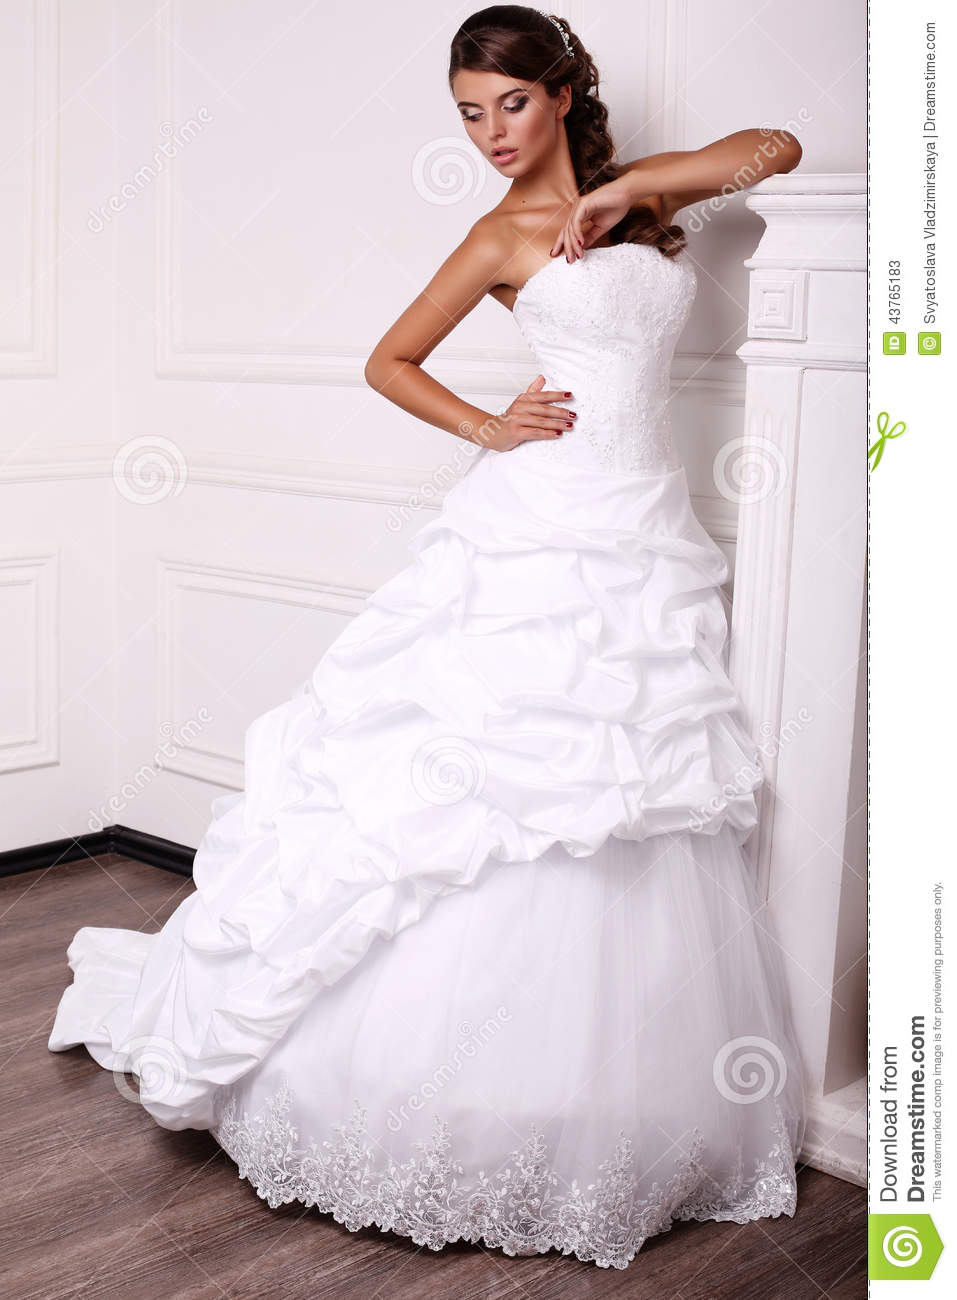 Beautiful Young Bride With Dark Hair In Wedding Dress Stock Image ...